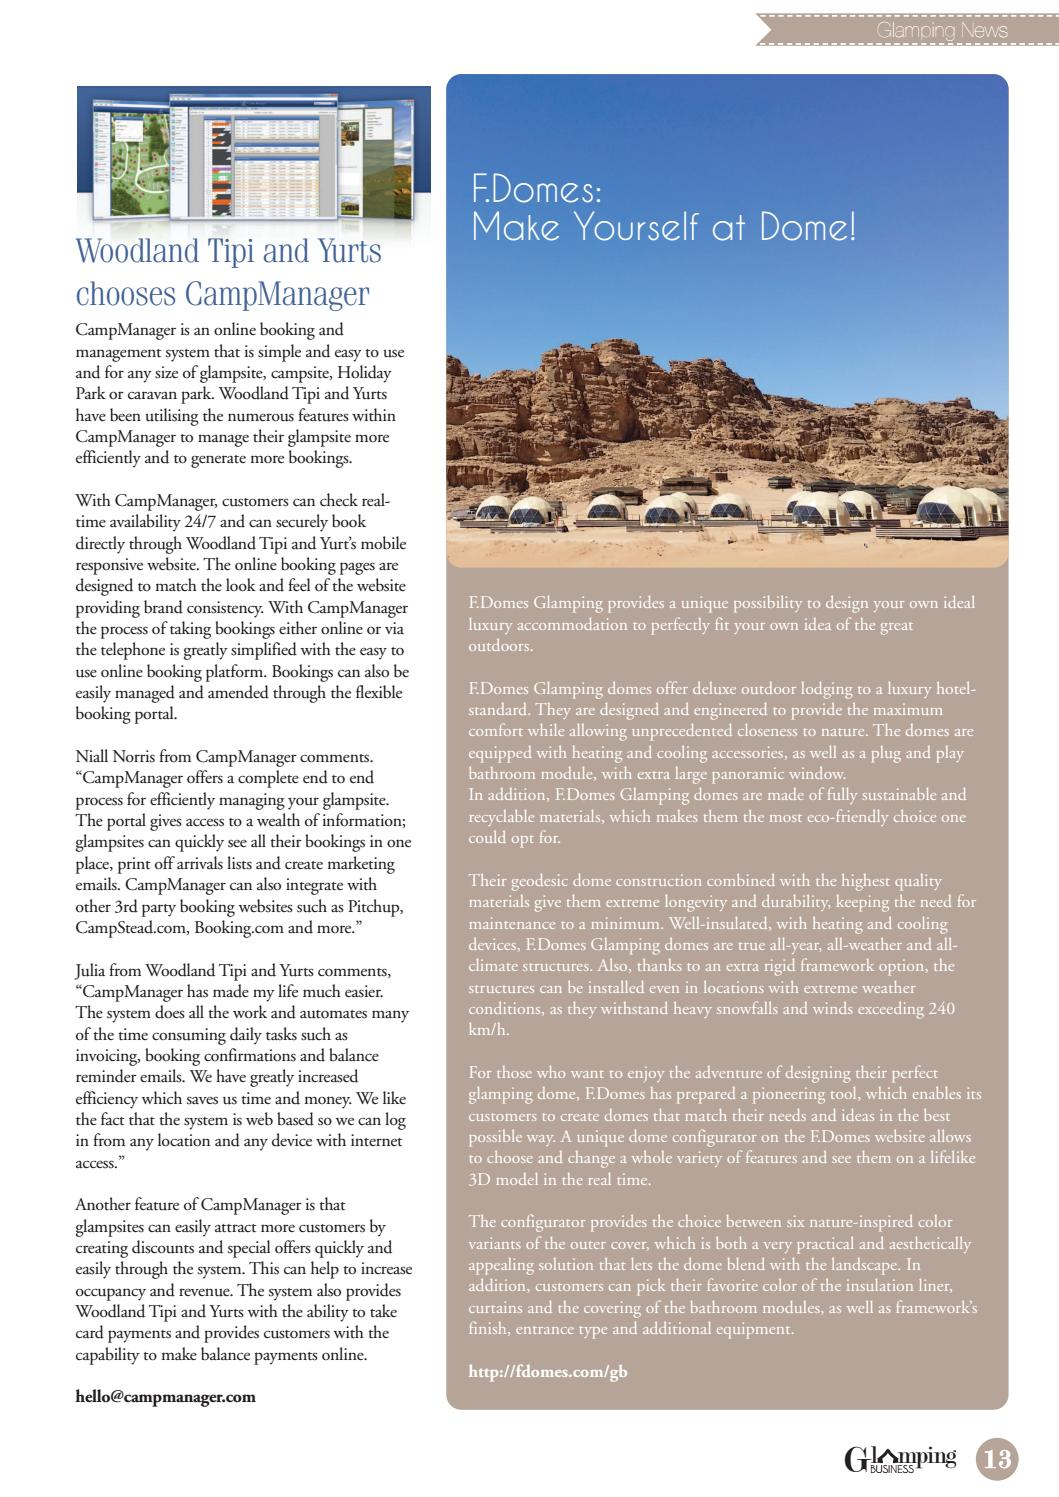 International Glamping Business July Issue By Holiday Parks